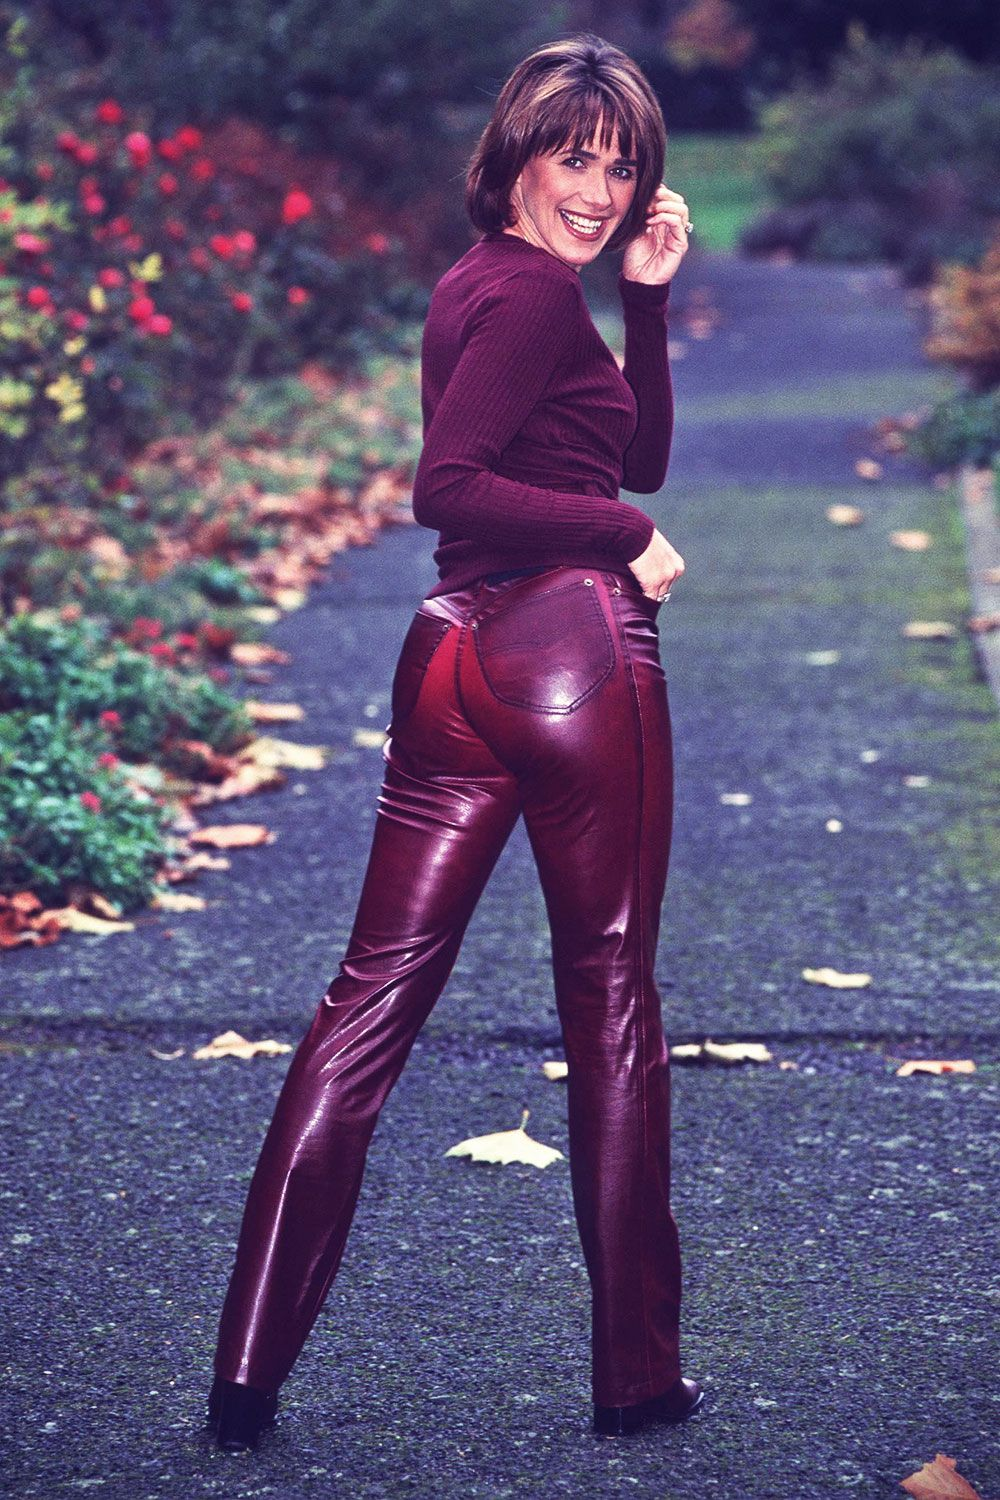 See how these midlife women look stunning in leather high latitude style